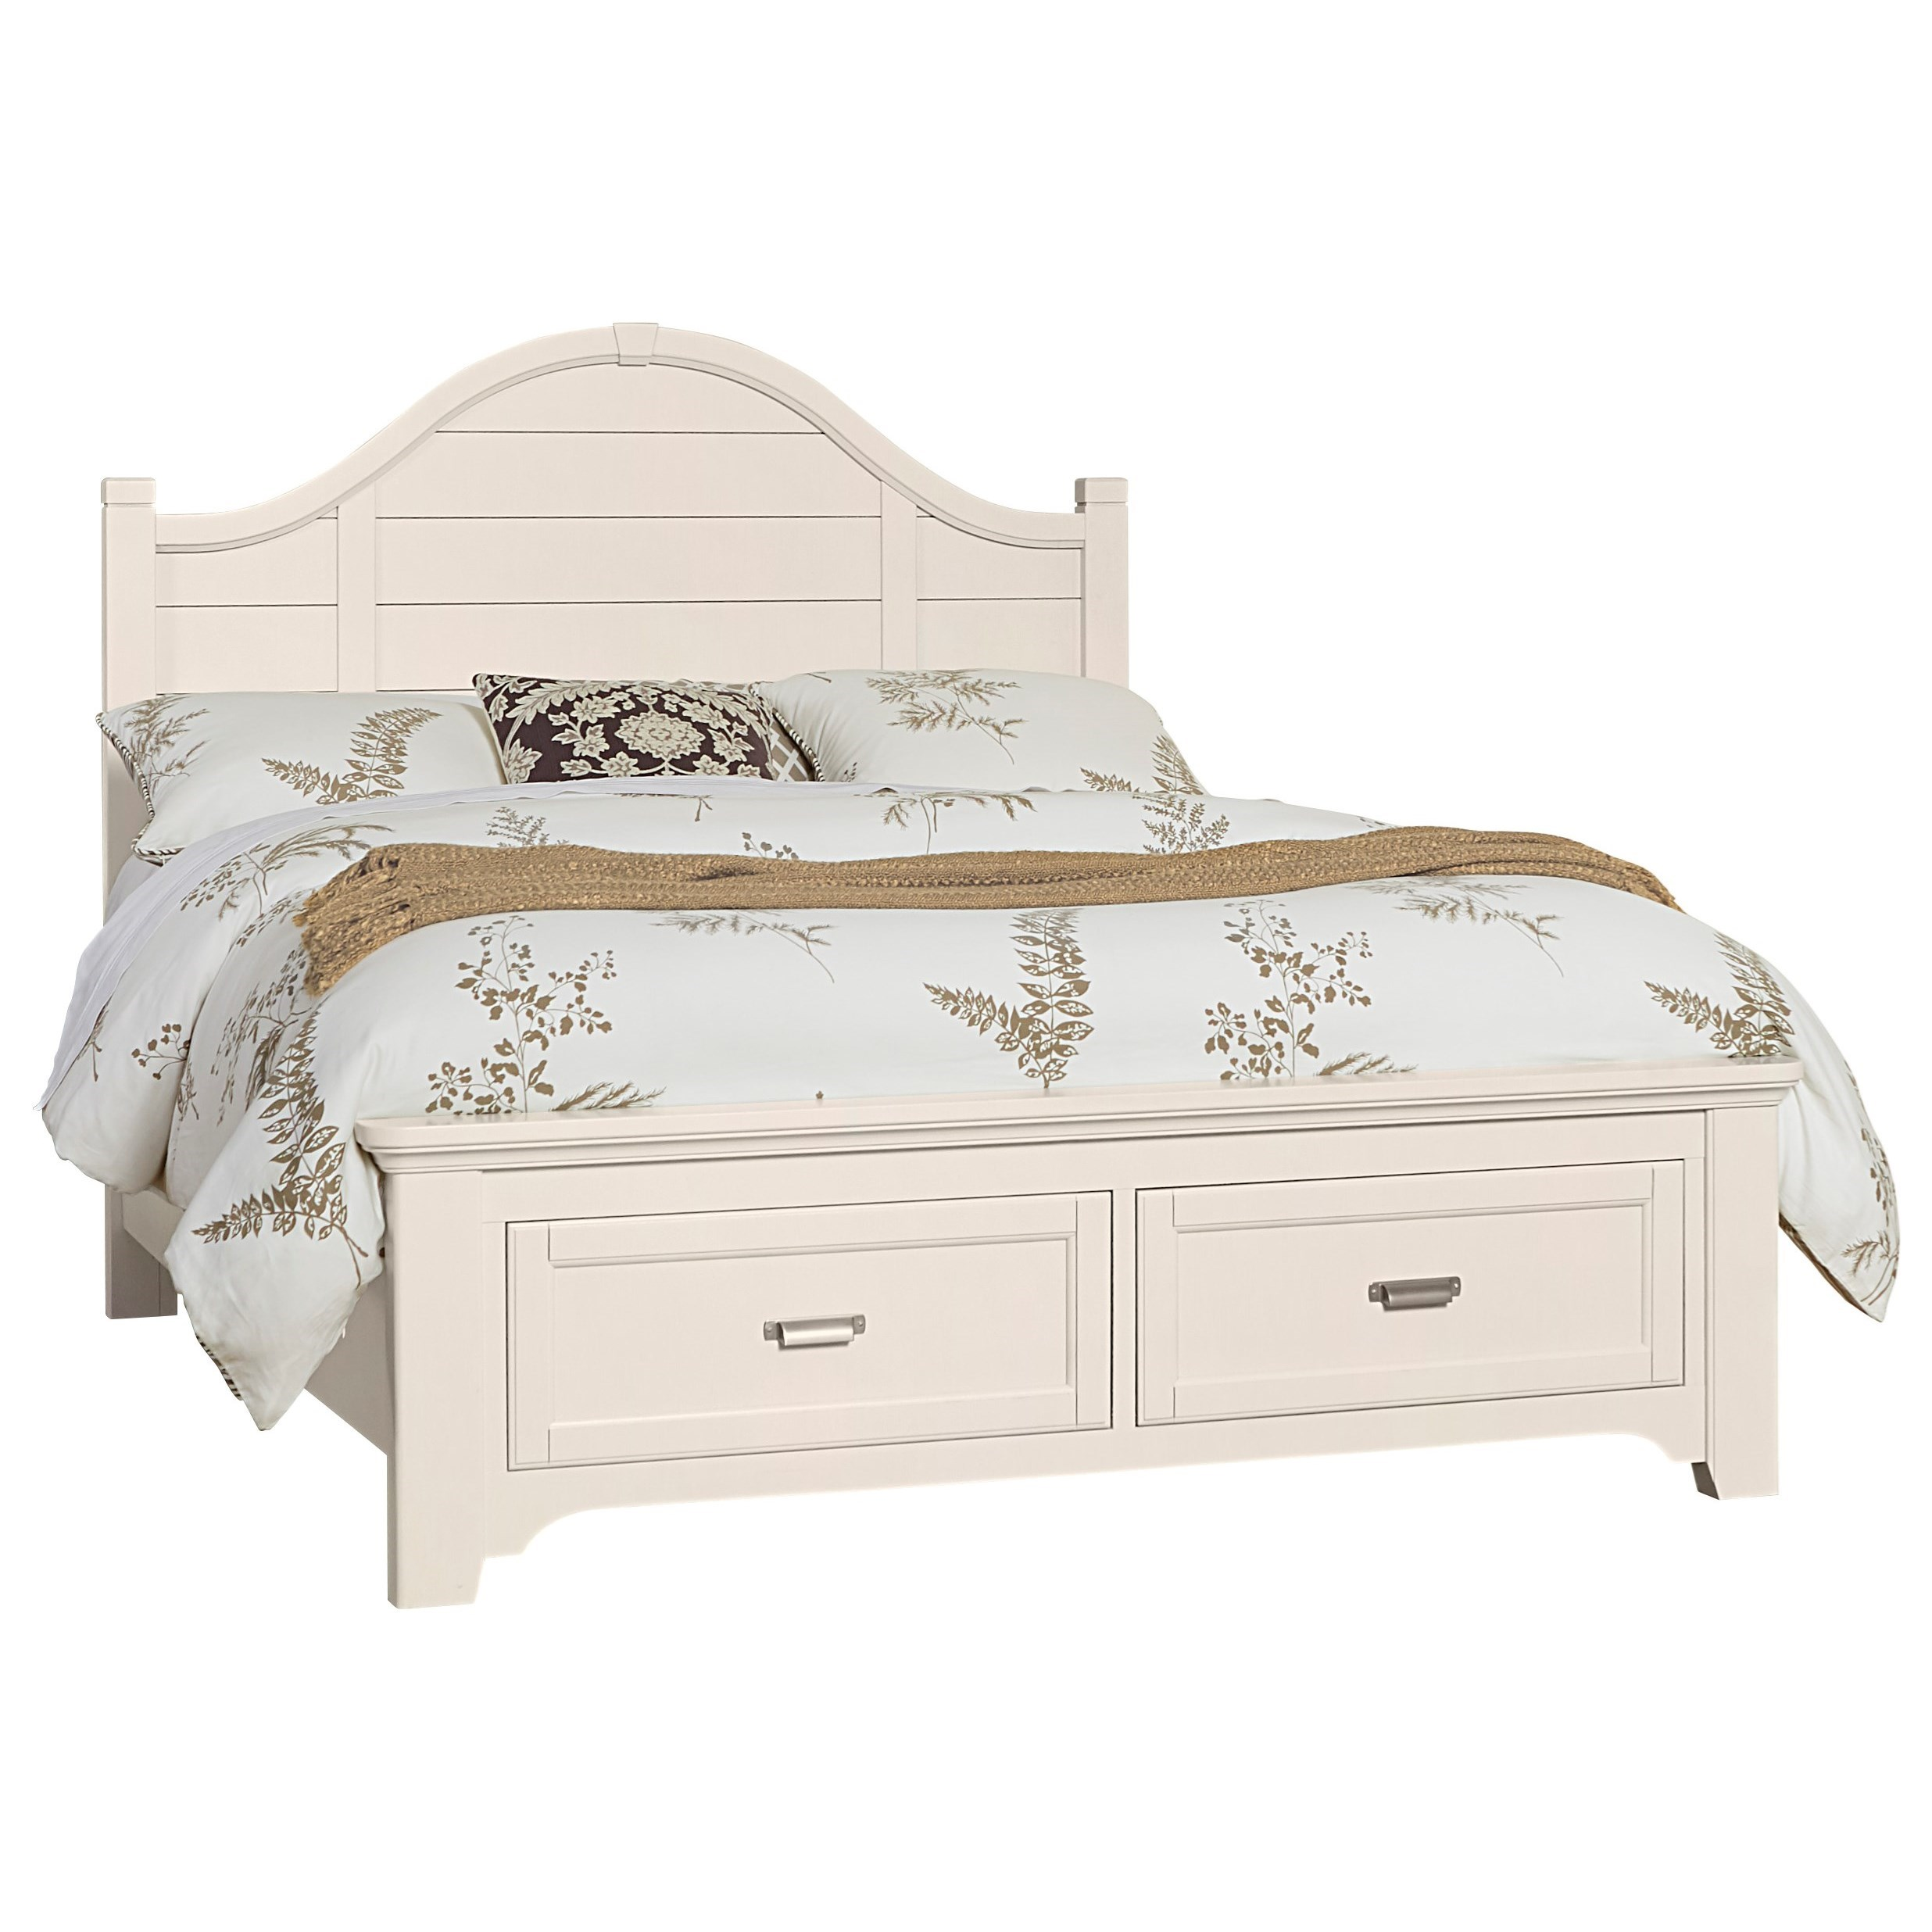 Bungalow Queen Arch Storage Bed by Vaughan-Bassett at Crowley Furniture & Mattress